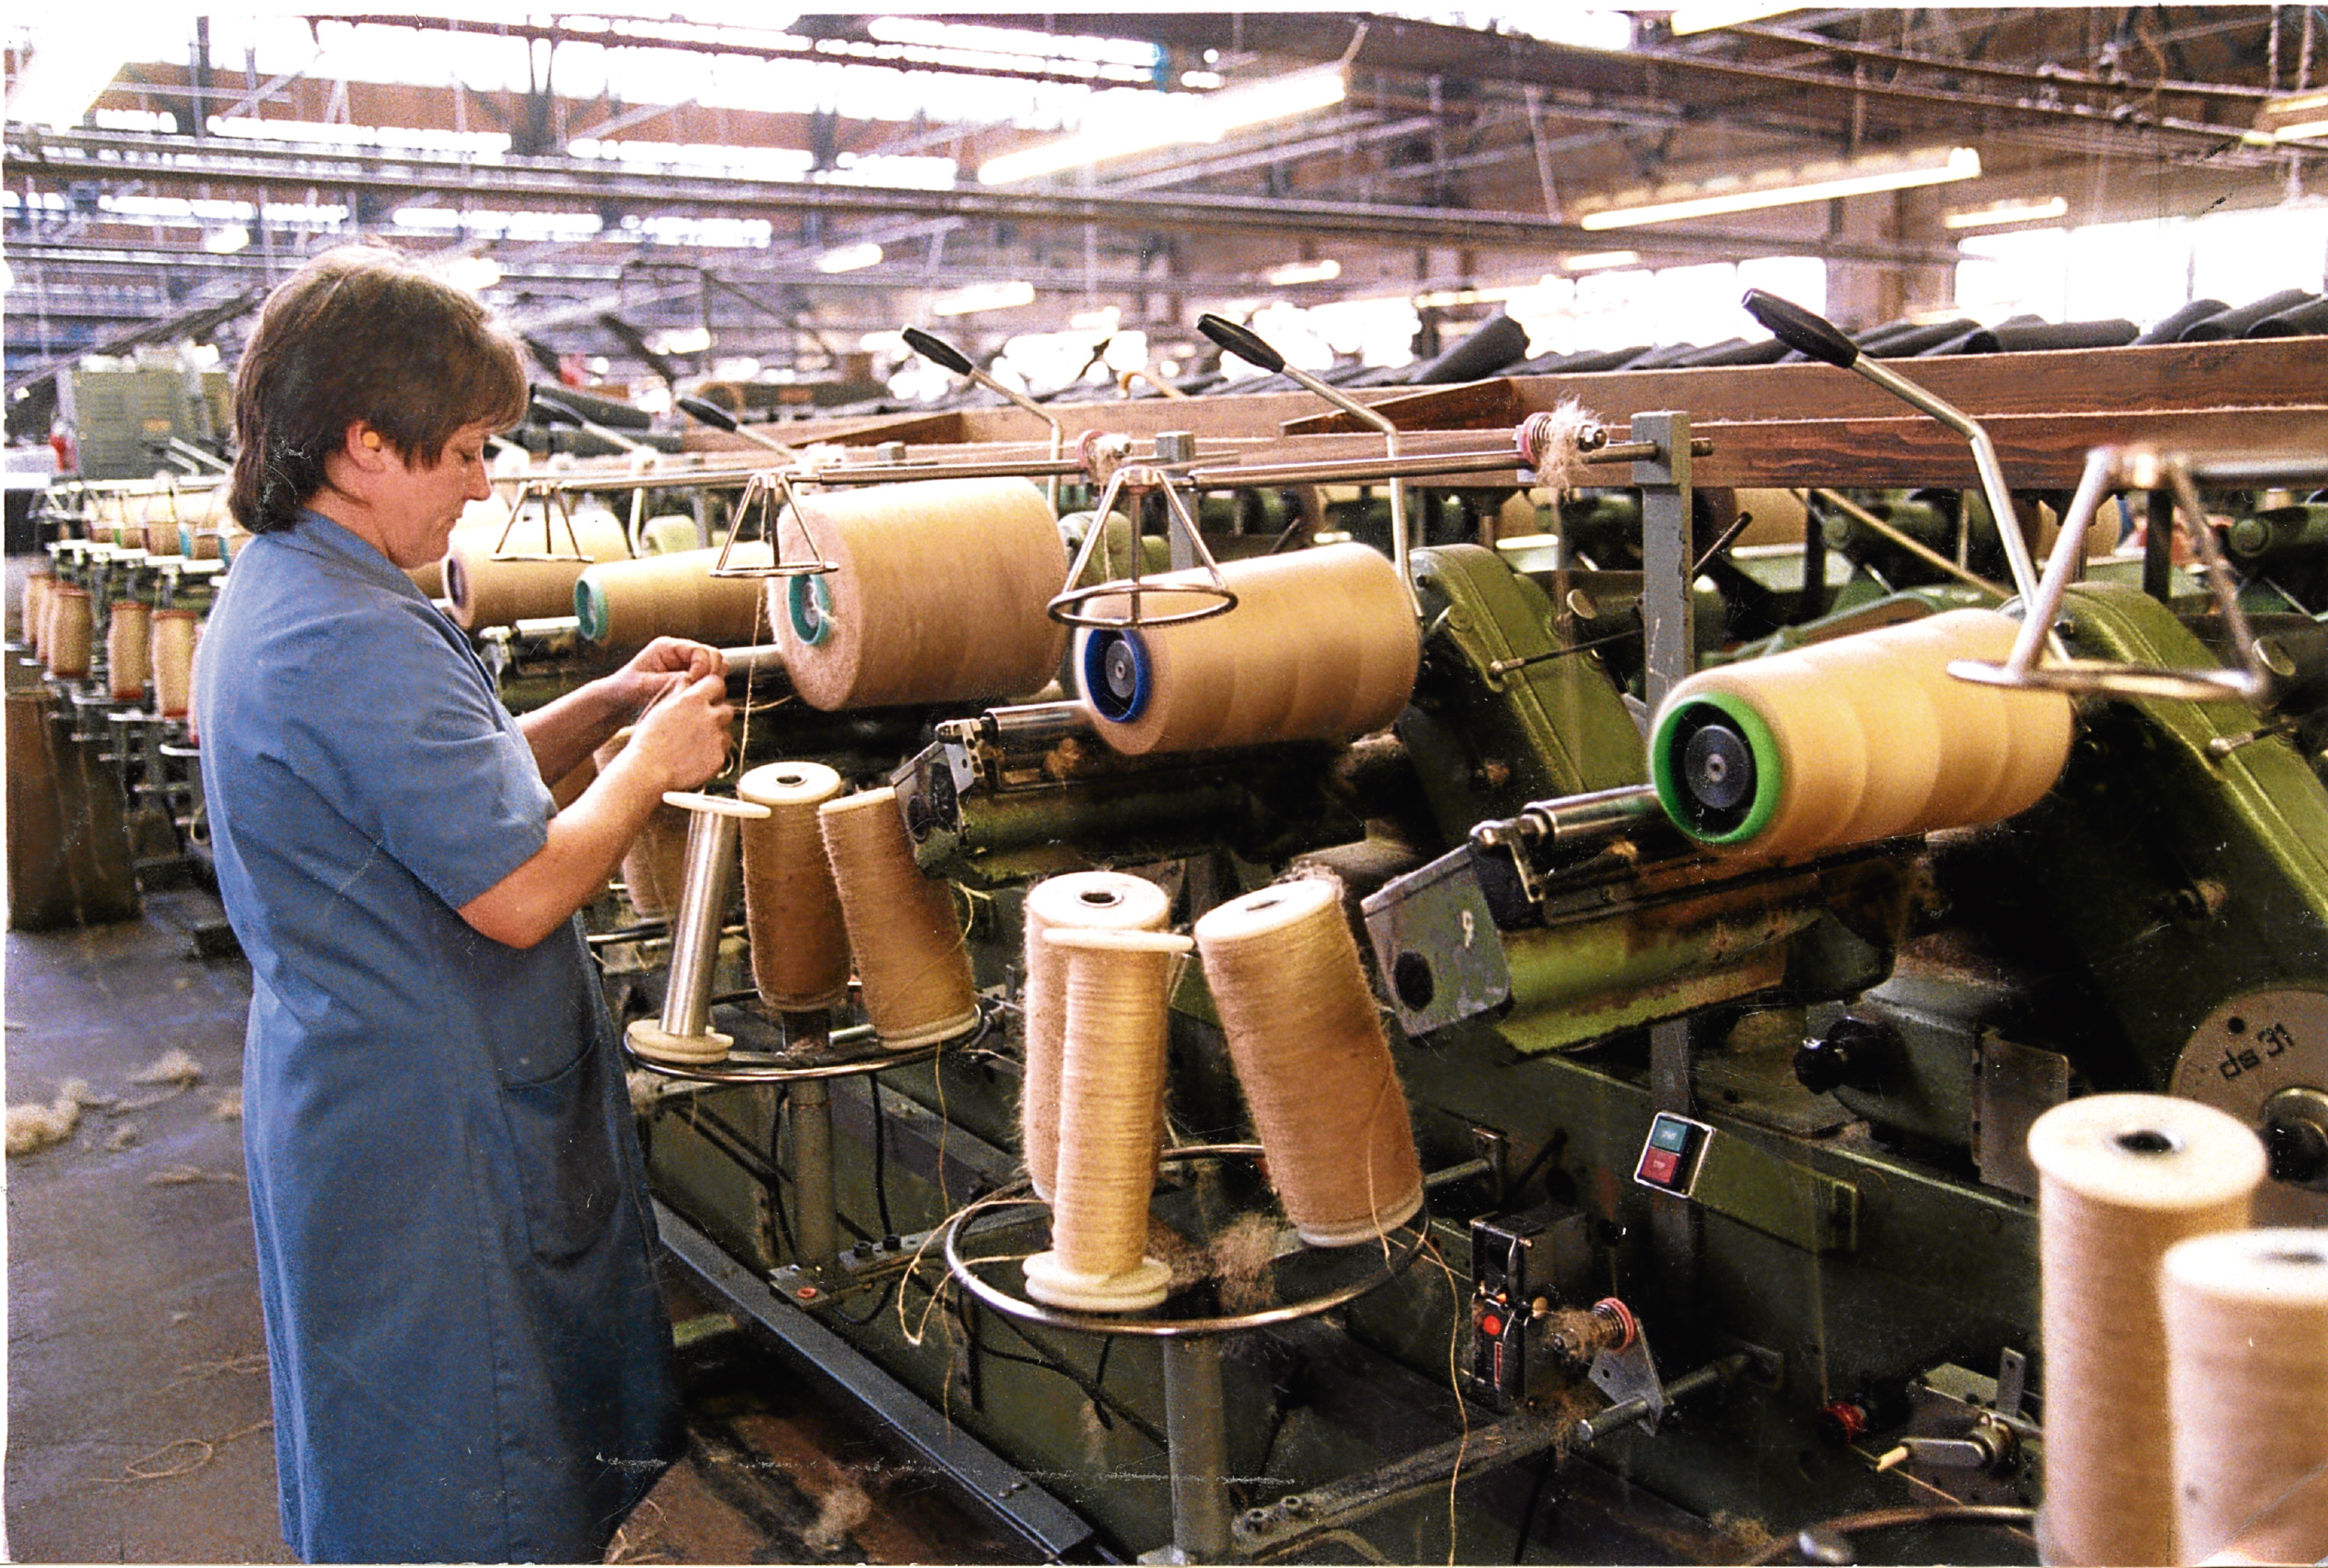 A lone worker tends to a vast bank of machines and an assorted array of jute reels at the former Tay Spinners factory in Dundee in 1998.